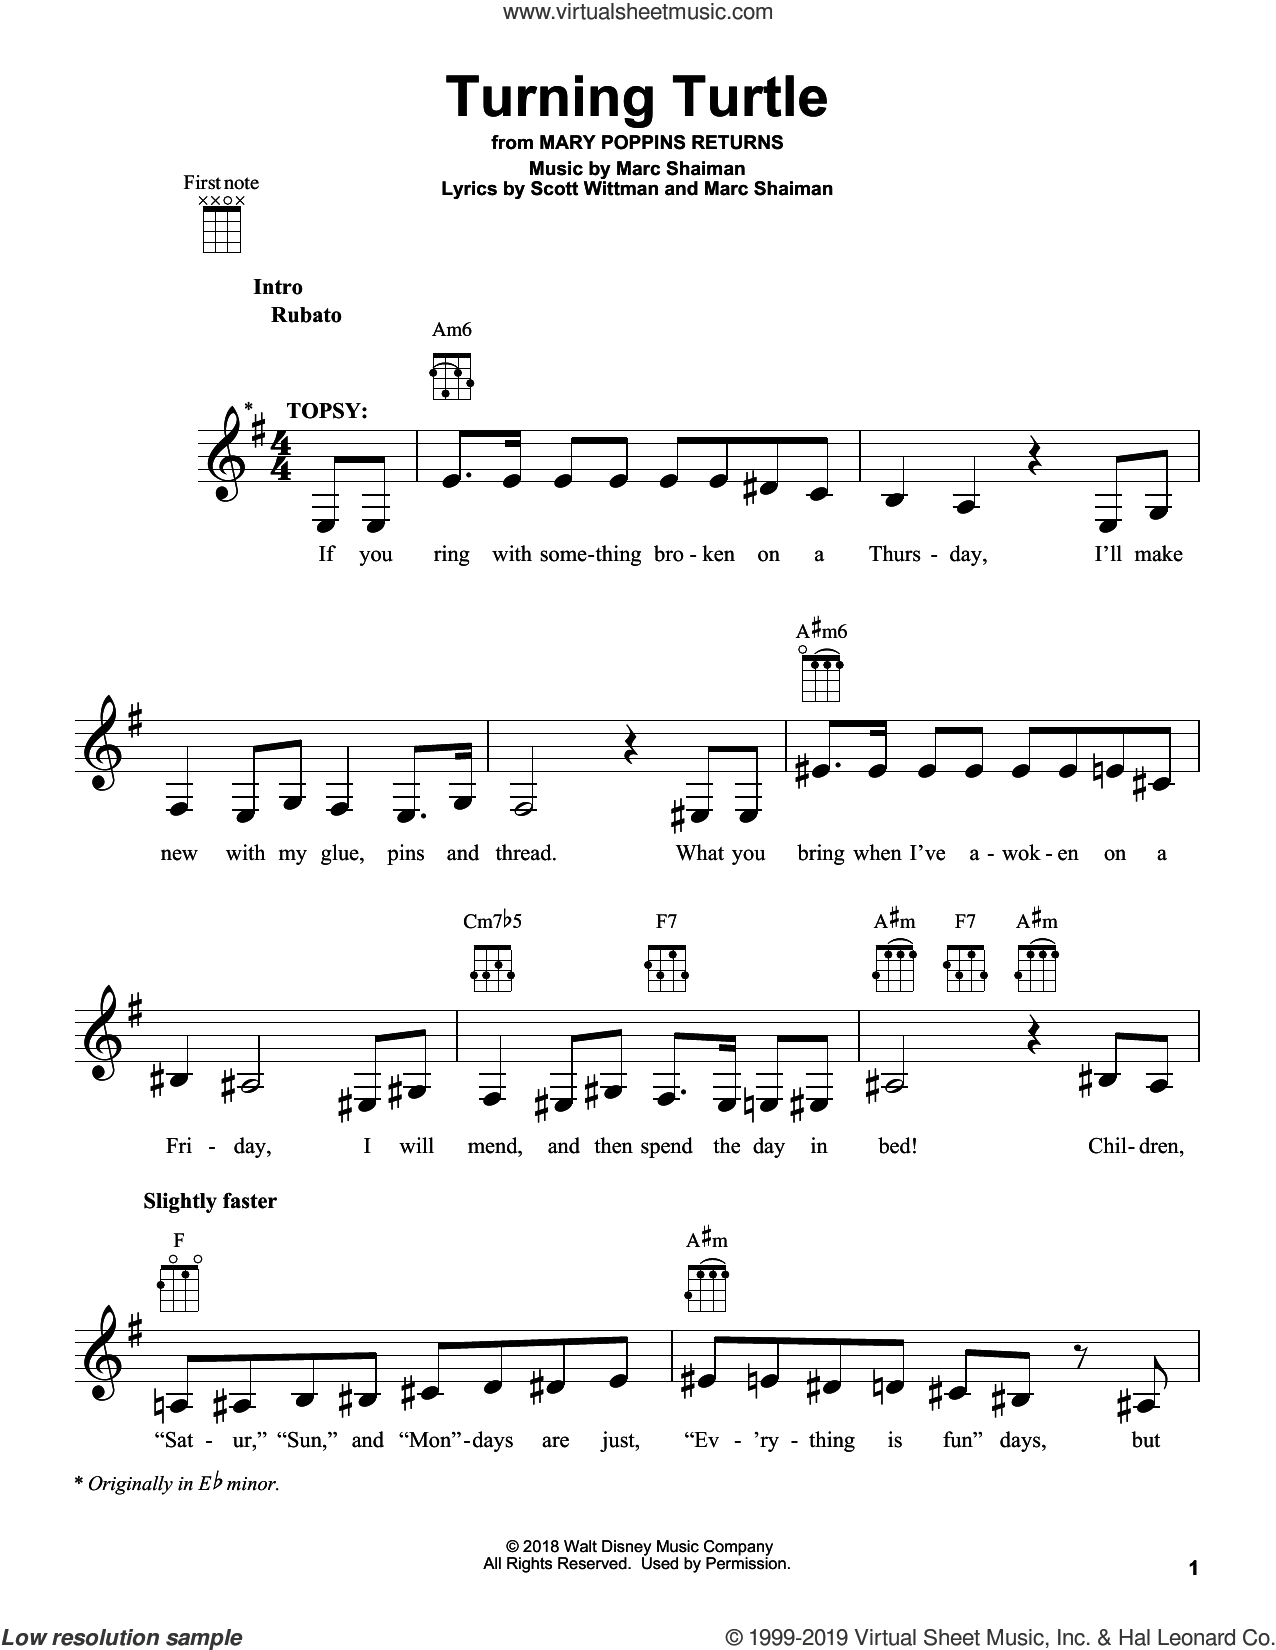 Turning Turtle (from Mary Poppins Returns) sheet music for ukulele by Meryl Streep & Company, Marc Shaiman and Scott Wittman, intermediate skill level